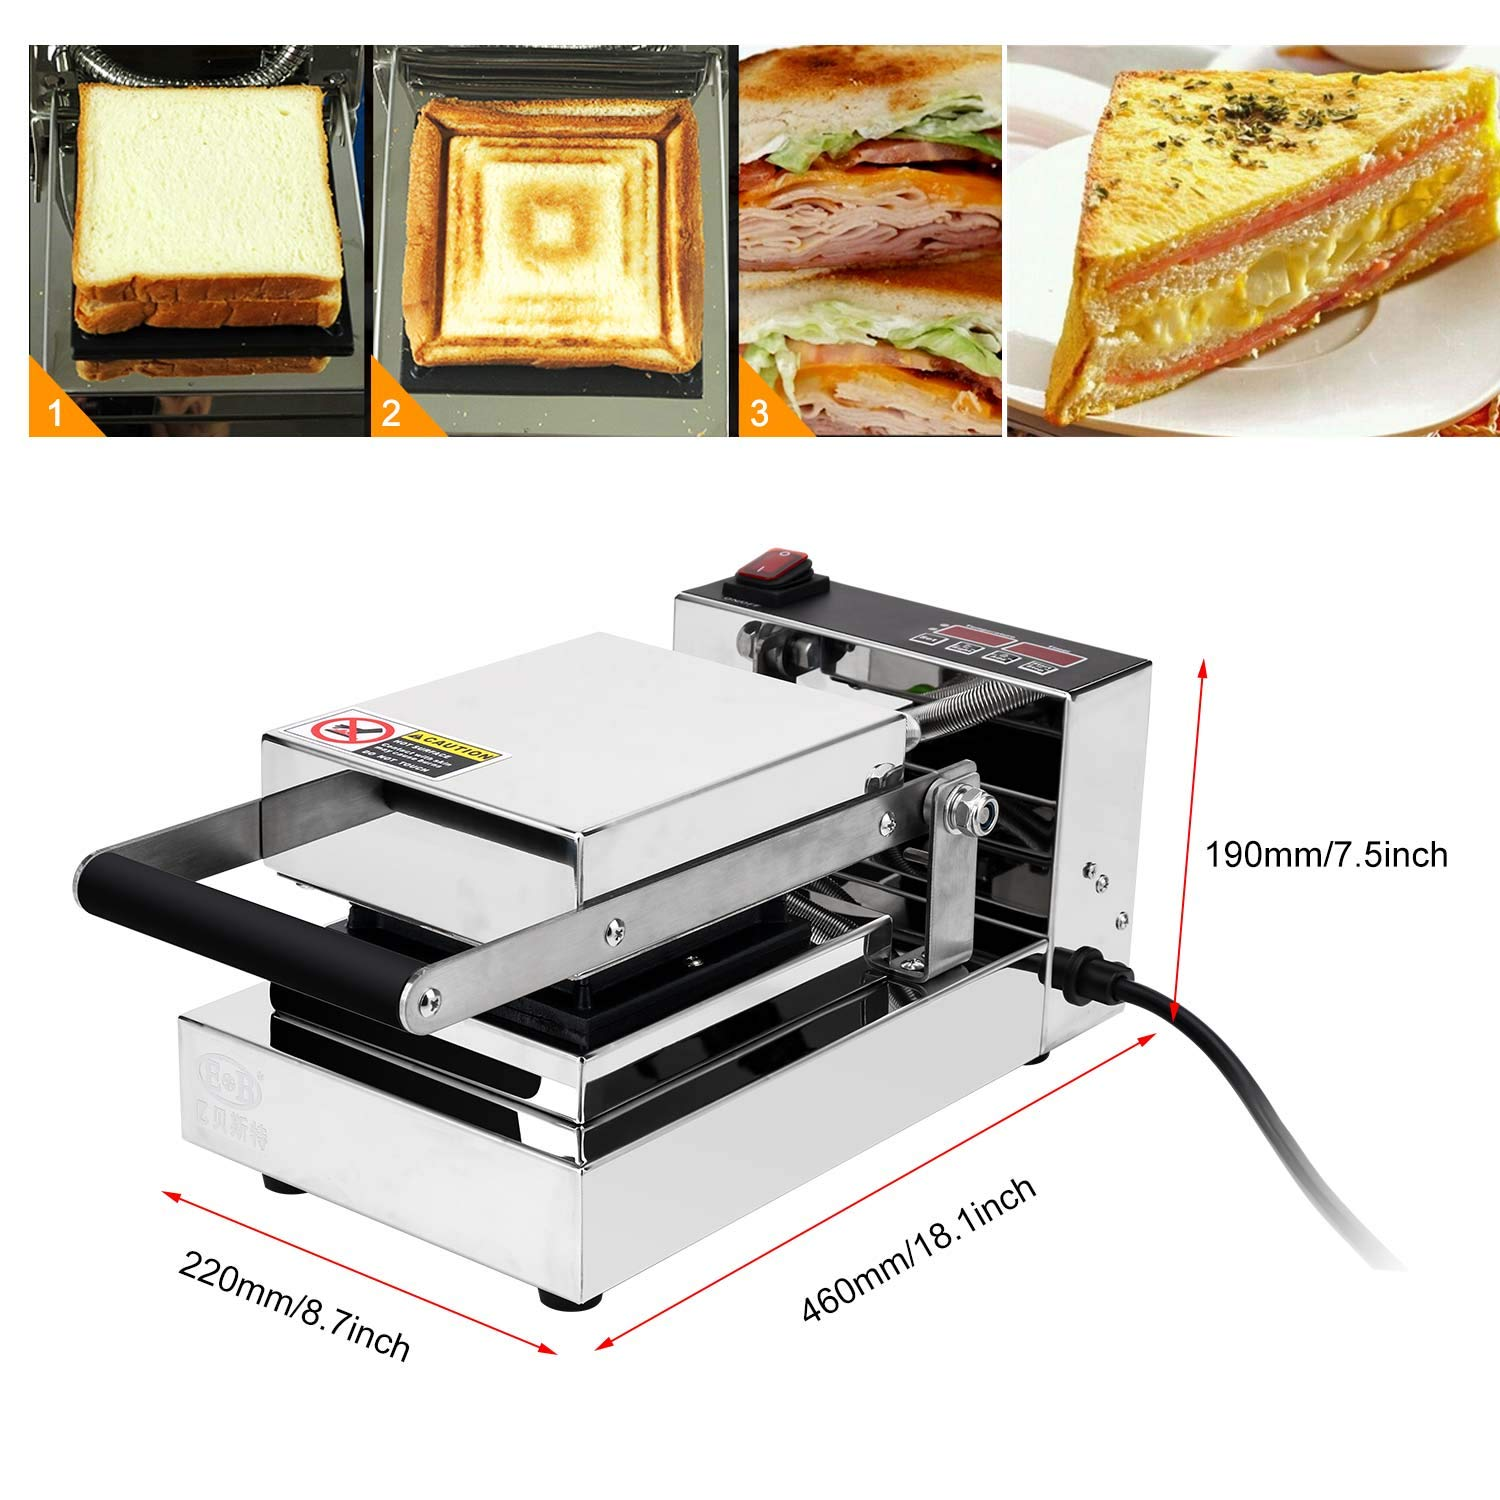 Temp 0-299 ℃ Double-Sided Heating Stainless Steel Multifunctional Nonstick Bread Toaster 50Hz Detachable Plate with Sealing System Sandwich Press IDABAY Sandwich Maker 600W